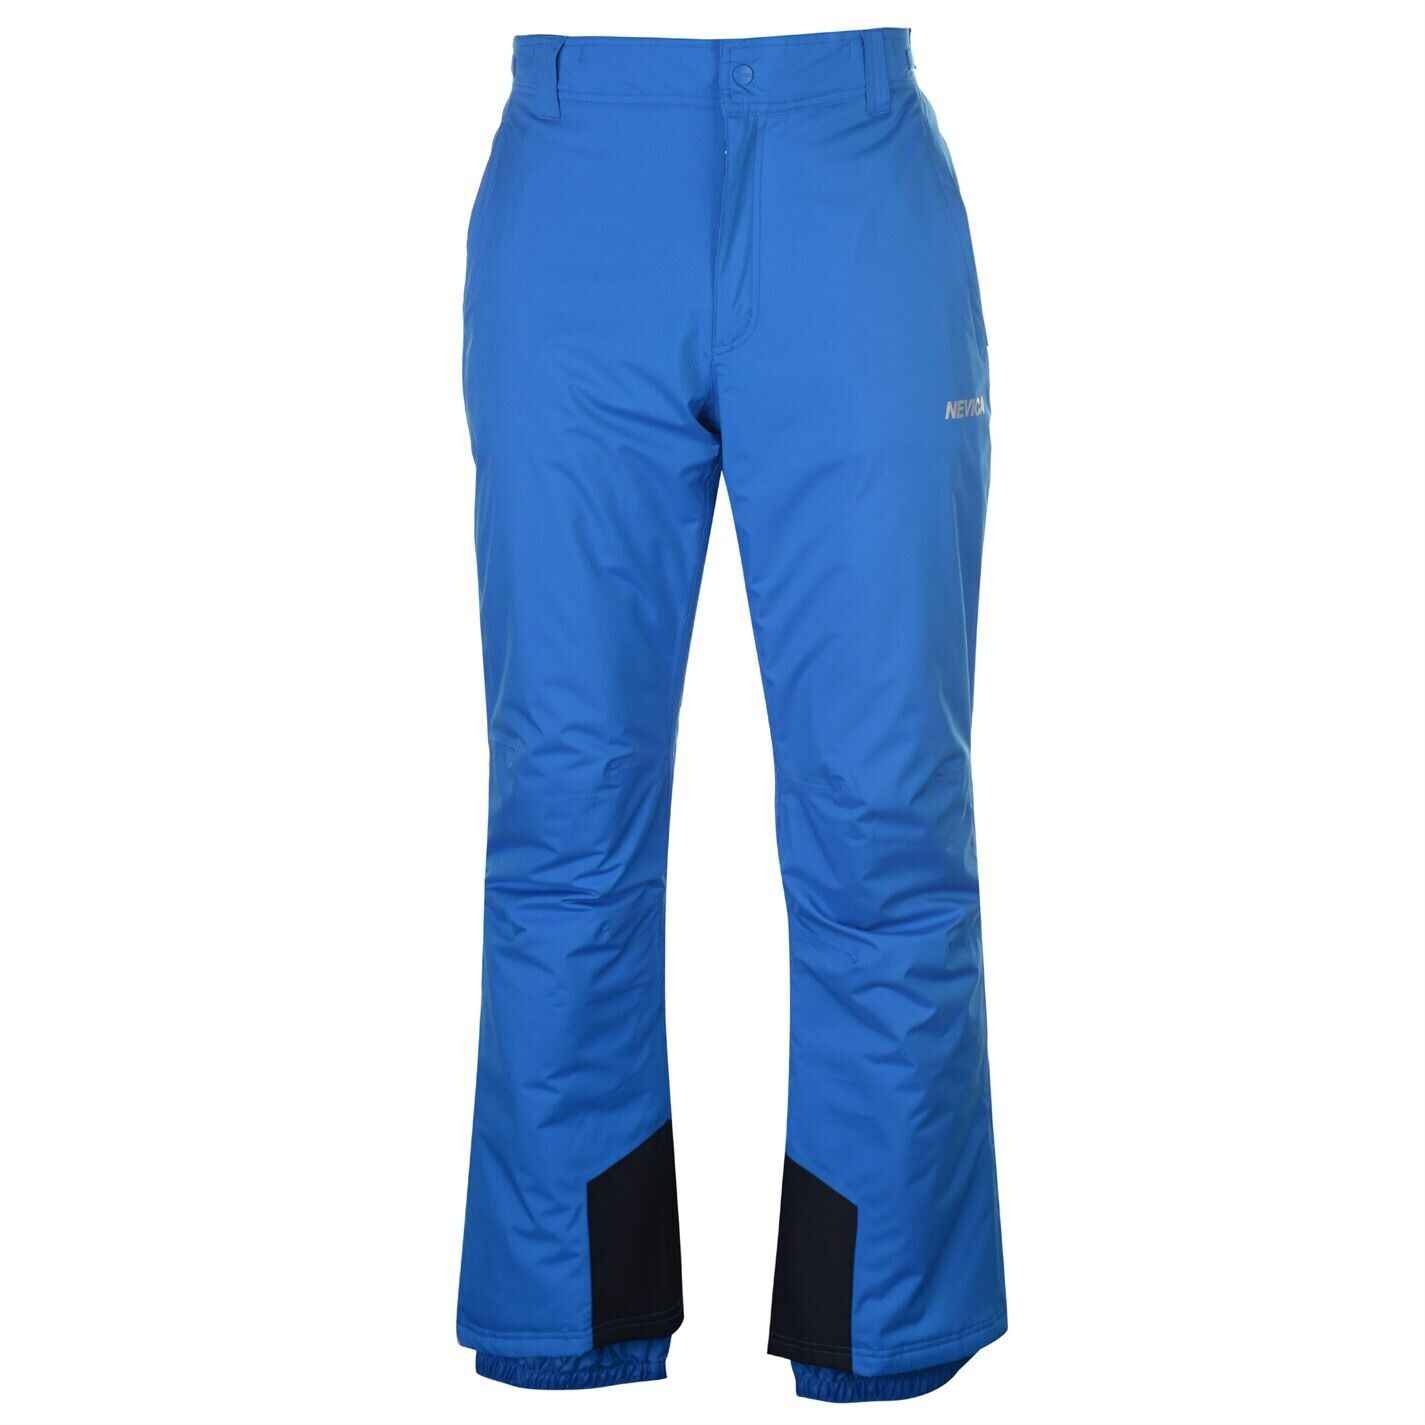 Bnwt Xl Mens Nevica Meribel Ski Pants